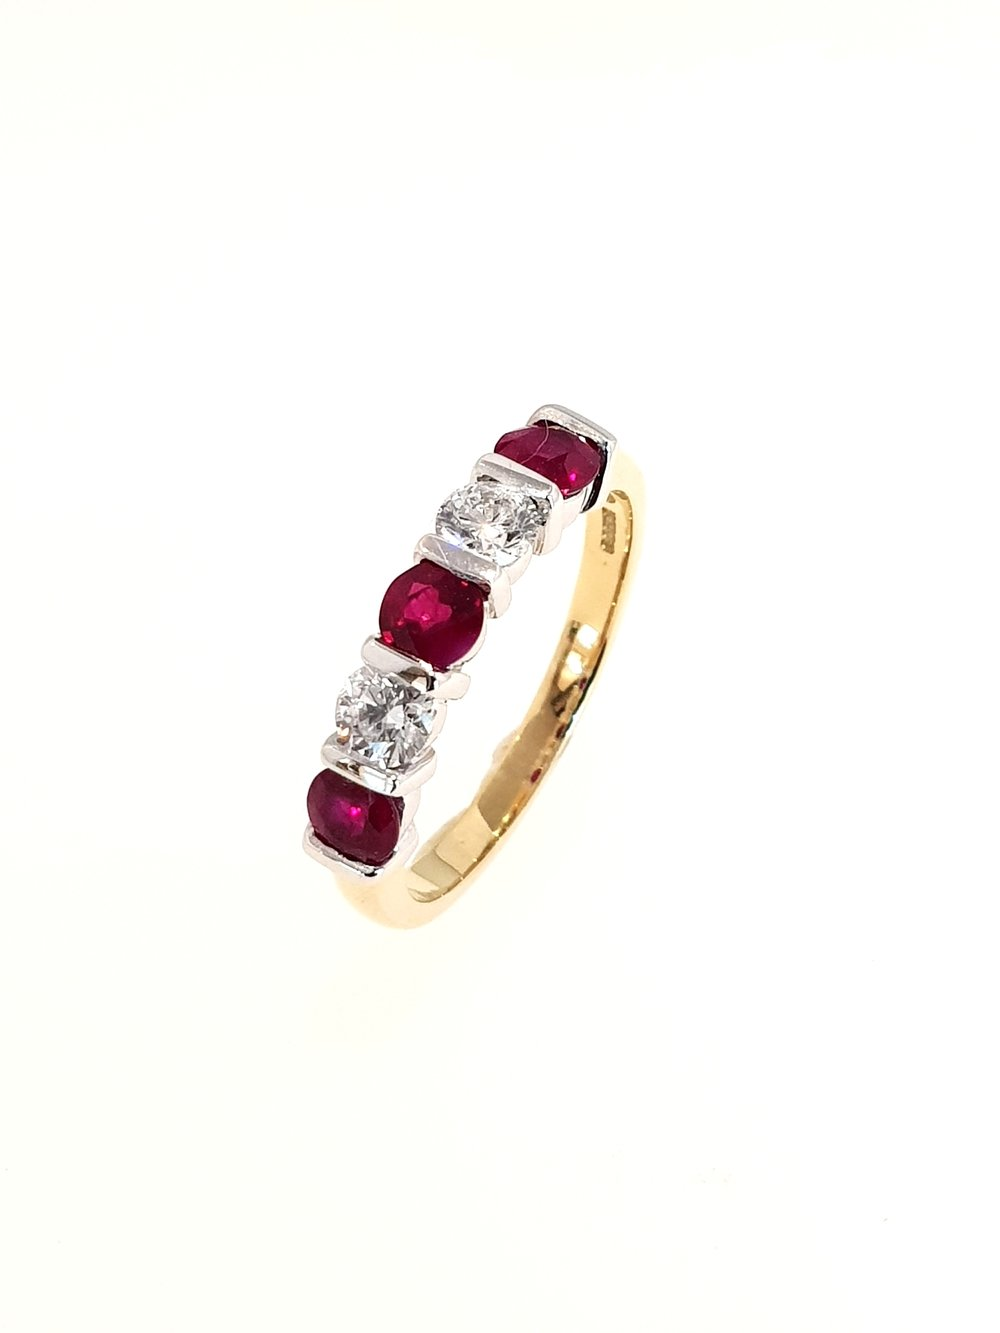 18ct Yellow Gold Ruby(.85ct) & Diamond Ring  Diamond: .41ct, G, Si1  Stock Code: N8980  £2100